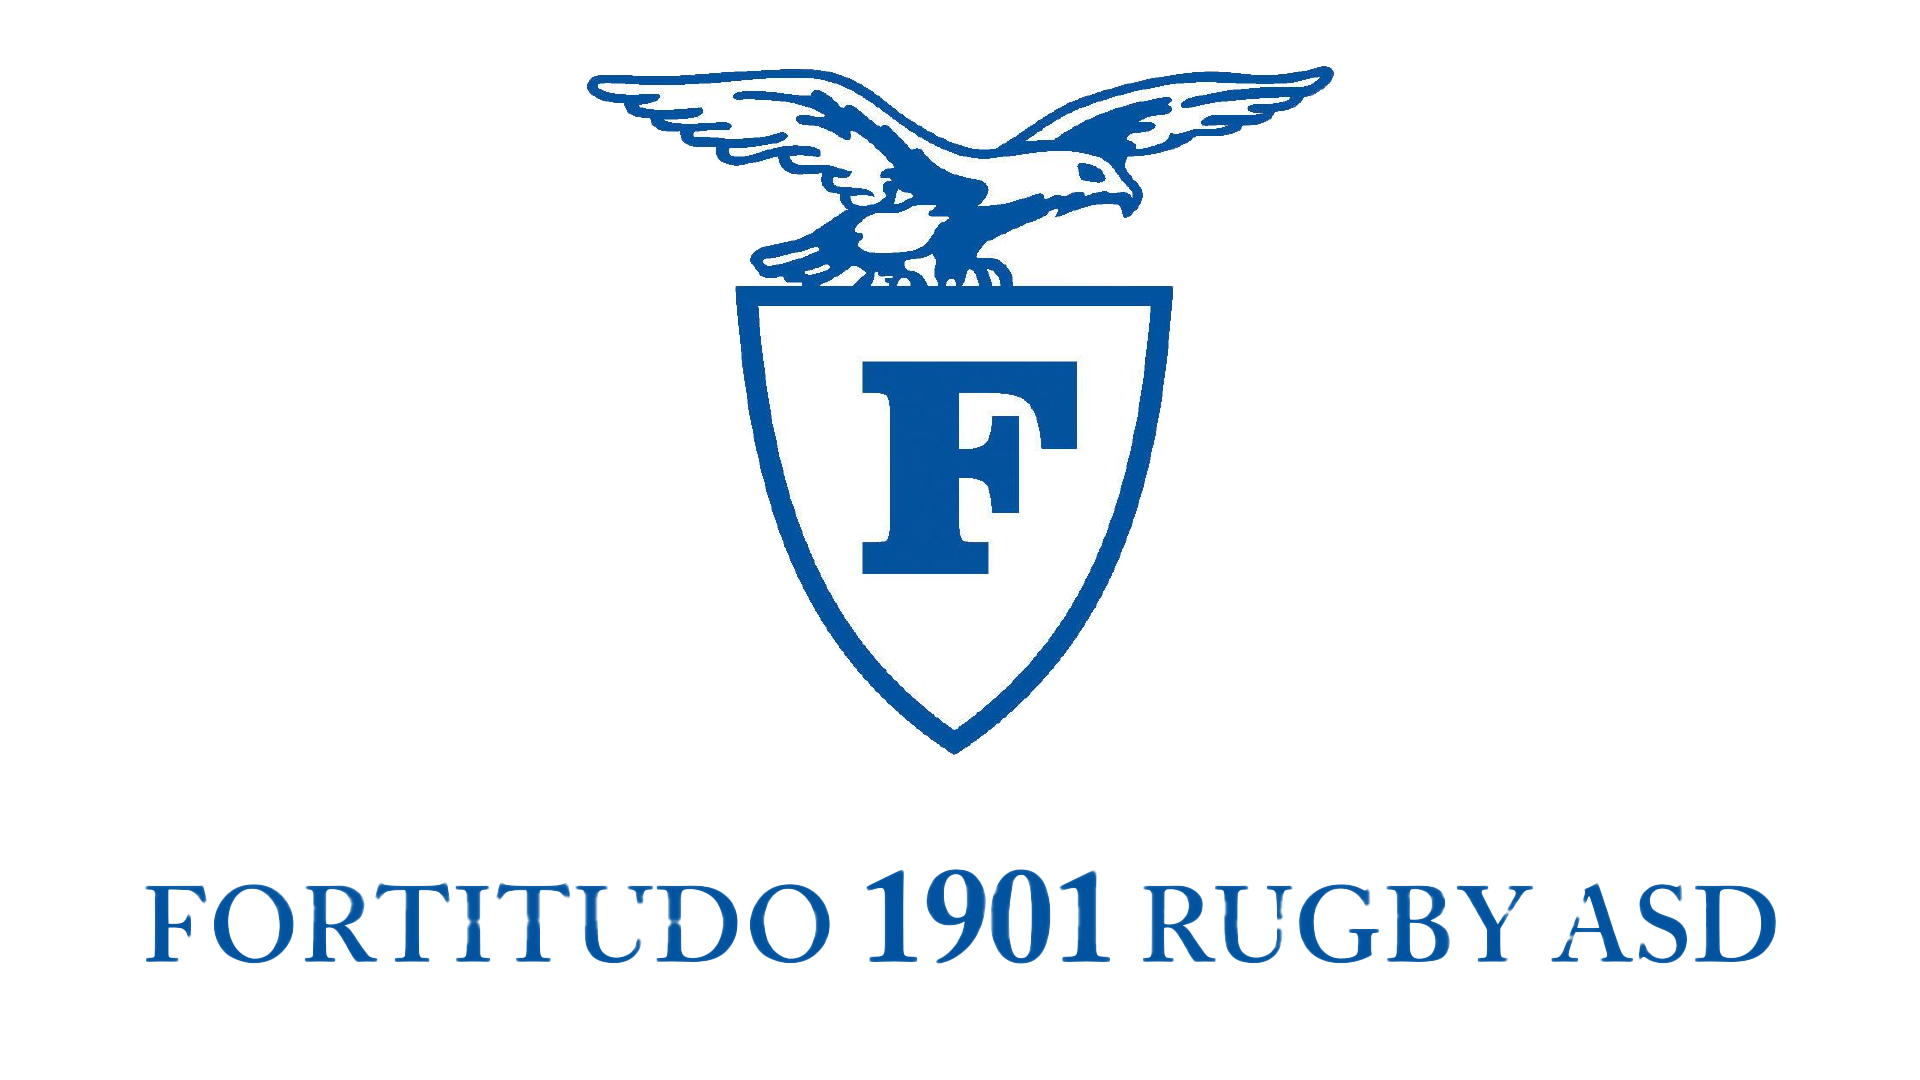 FORTITUDO 1901 RUGBY ASD